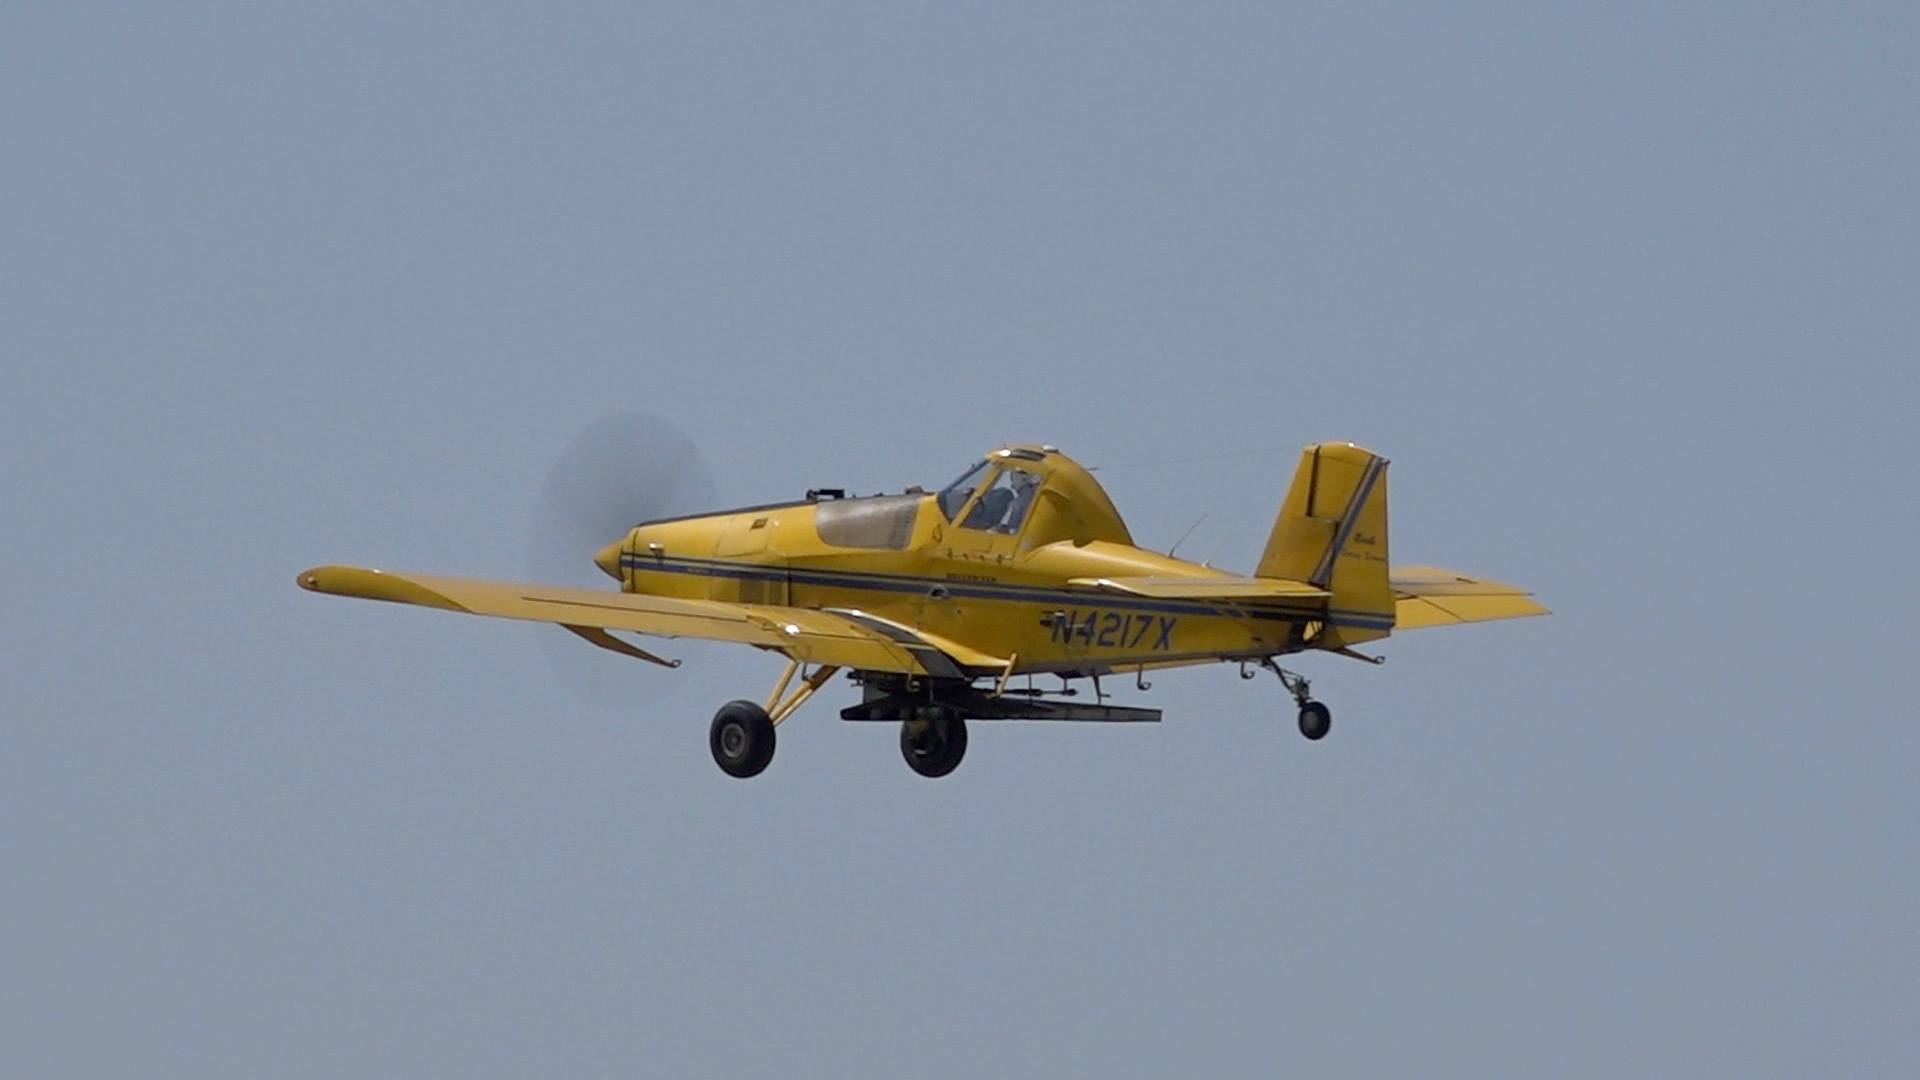 The Bay County Mosquito Control has begun aerial spraying operations. (Photo: Bay County Facebook Page)